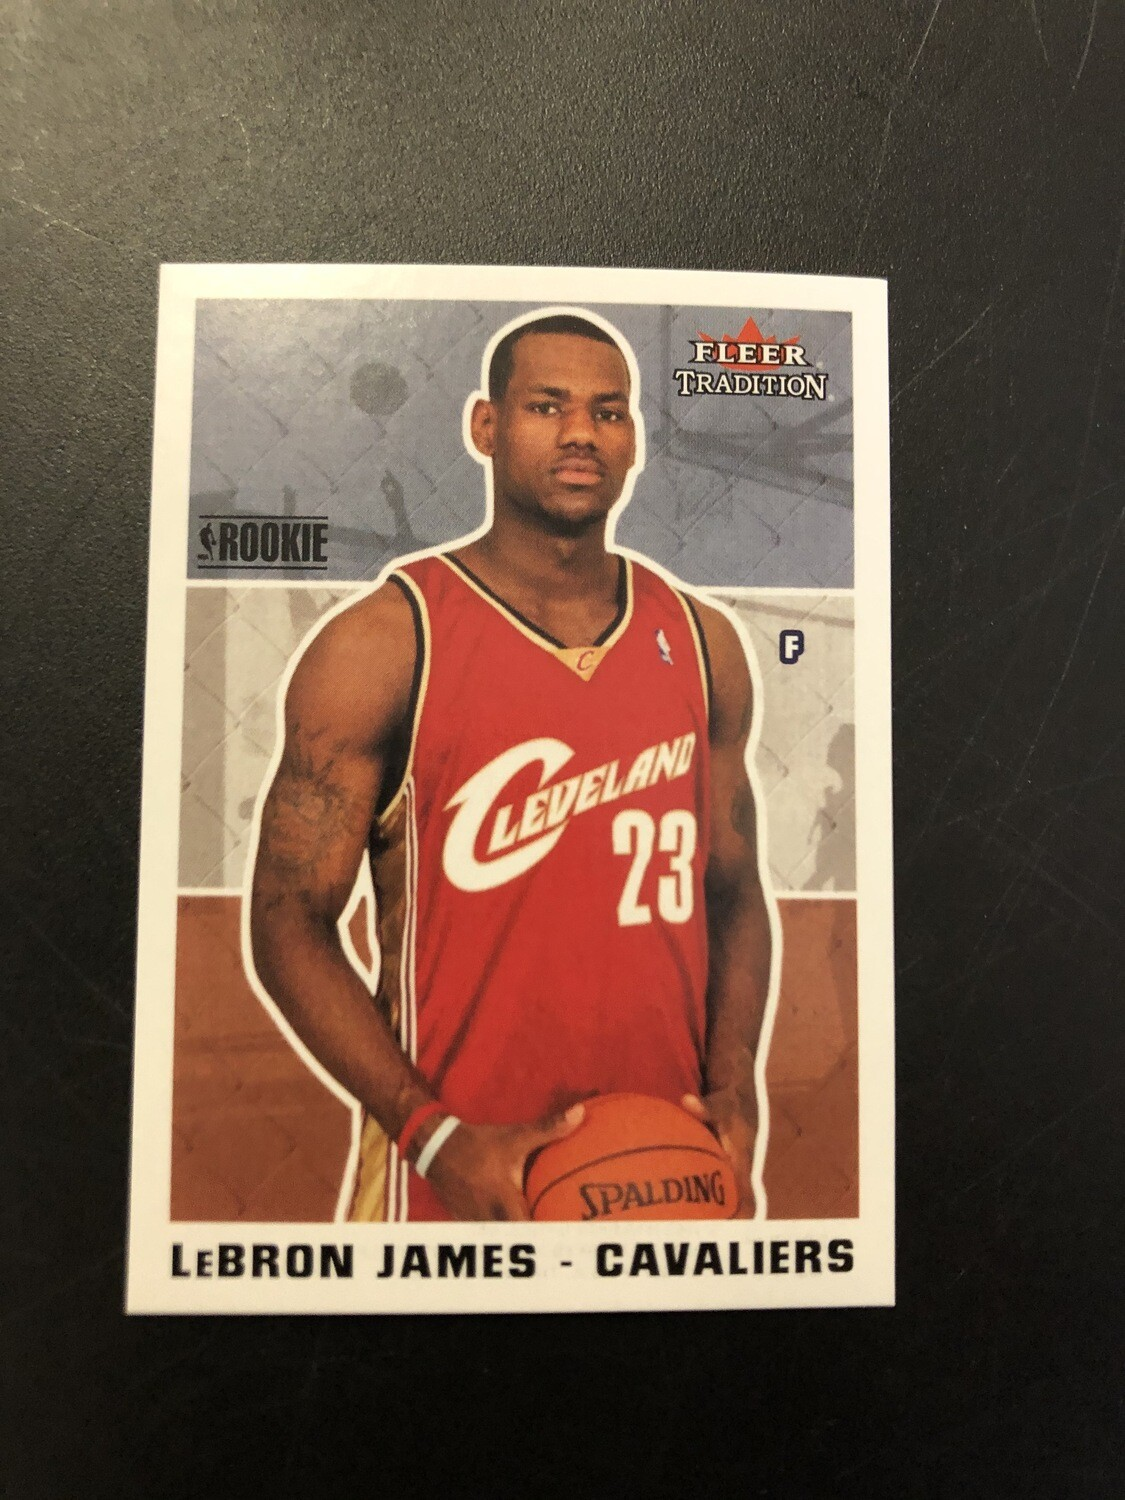 2003-04 Fleer Tradition Lebron James rookie